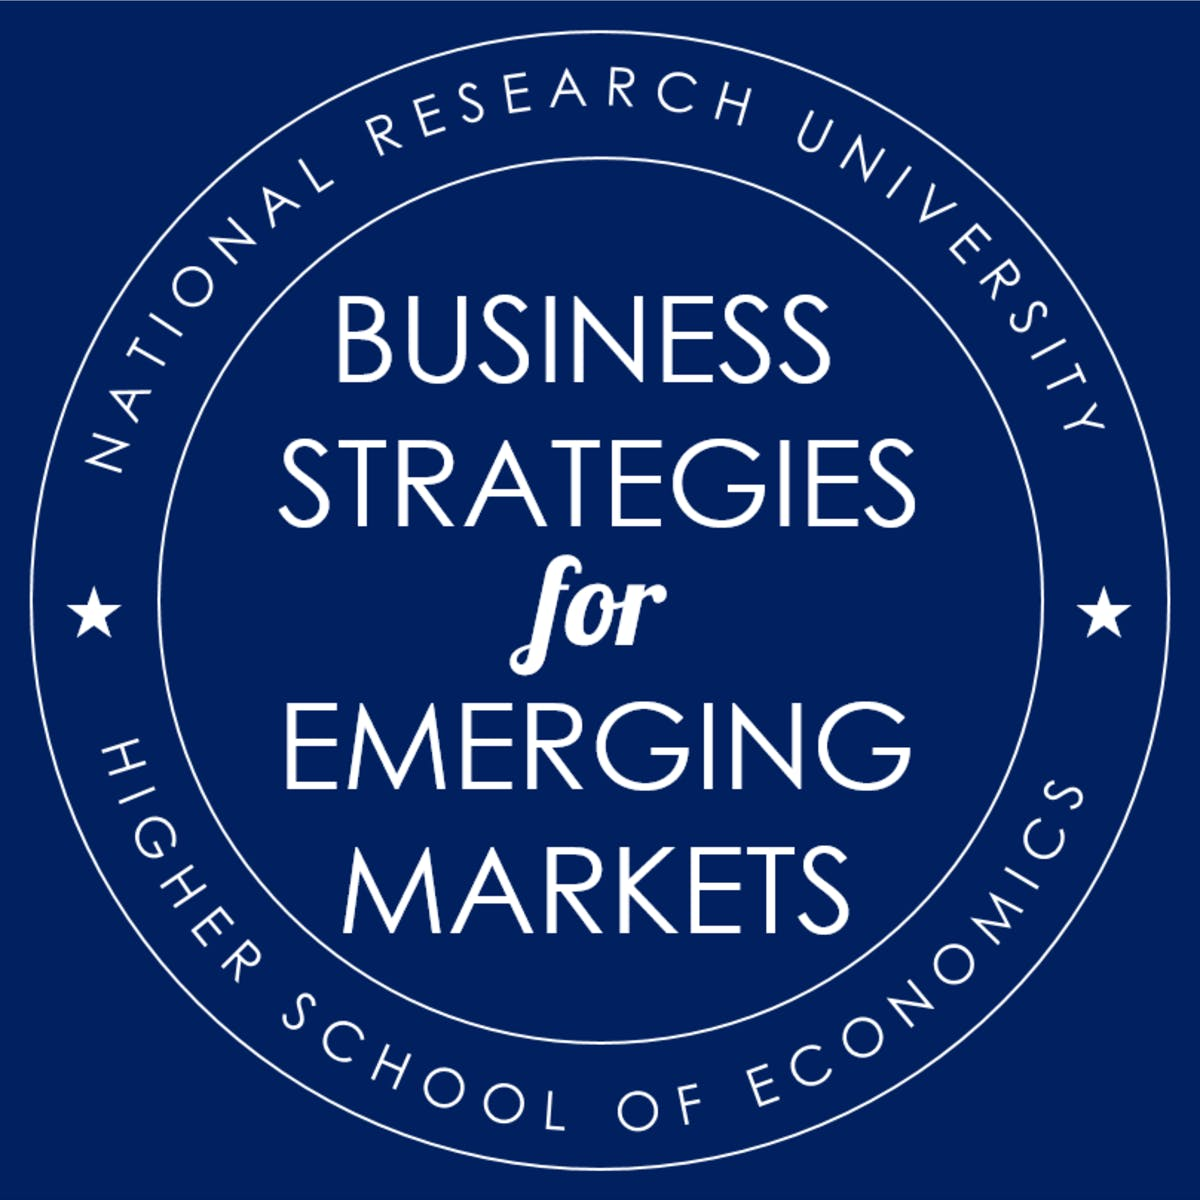 Business Strategies for Emerging Markets